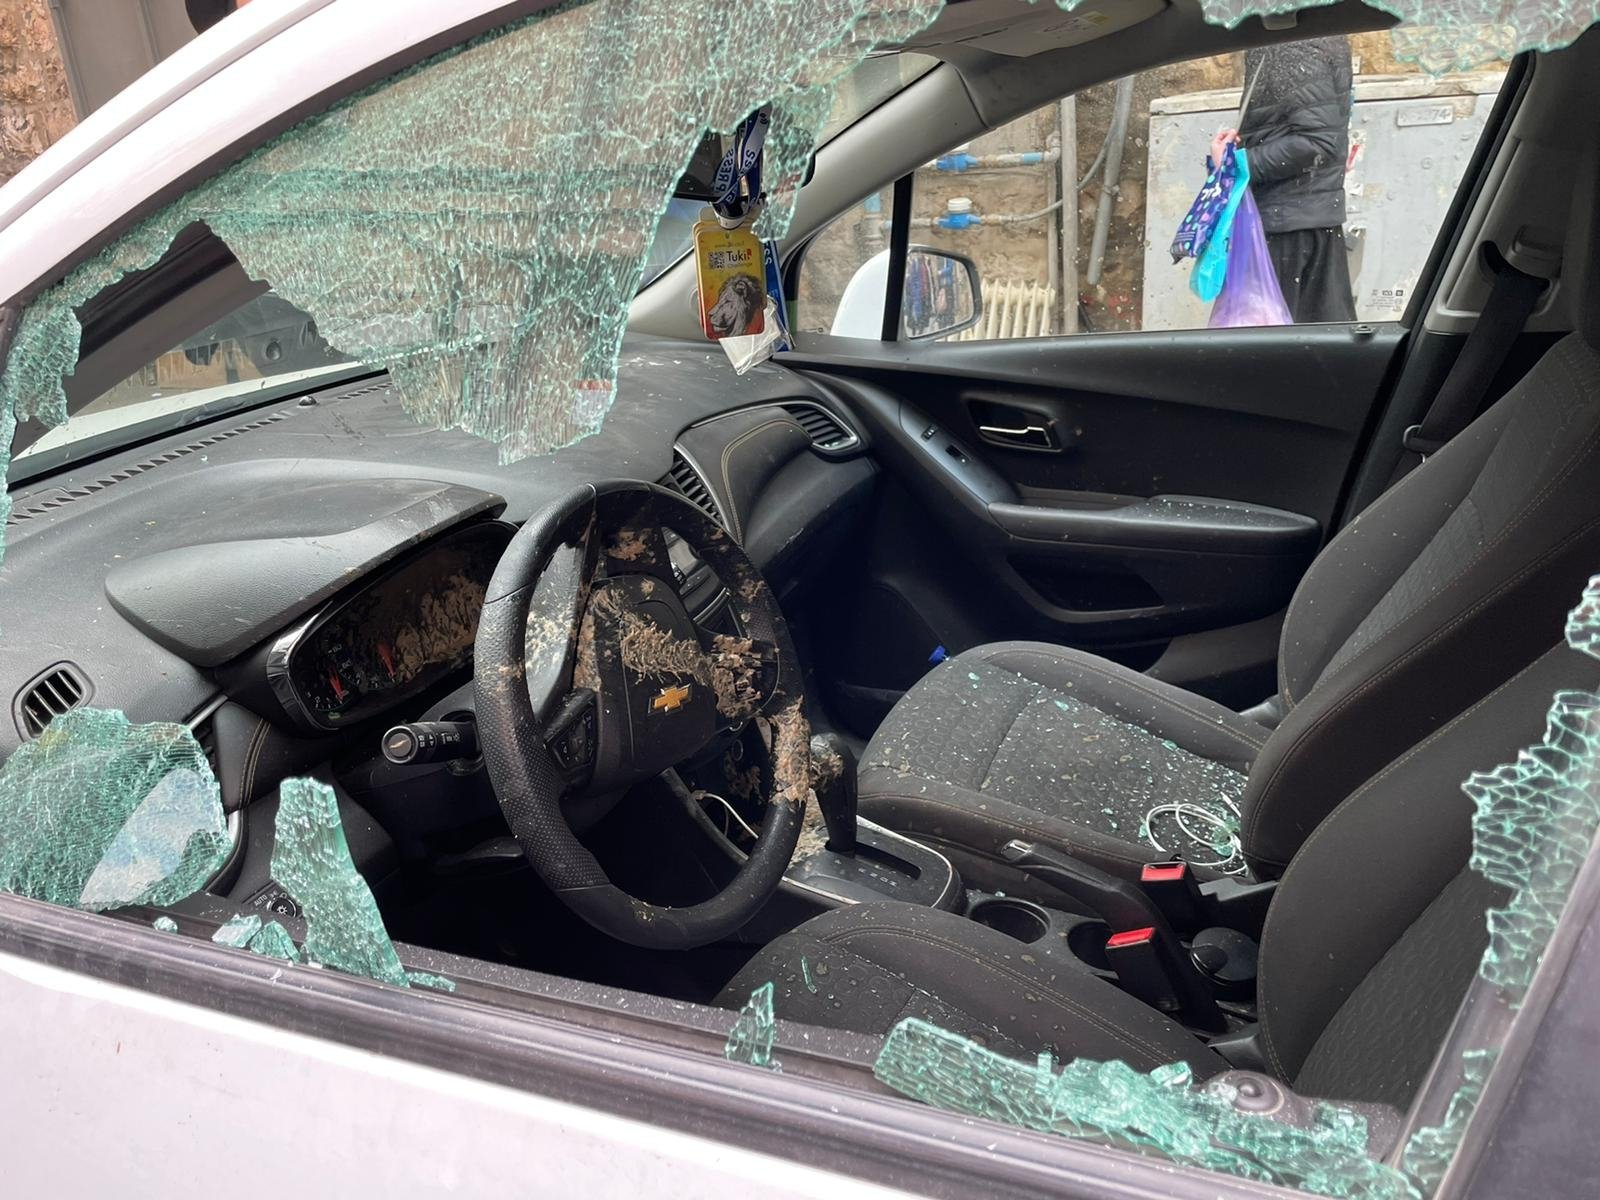 The Anadolu Agency (AA) car that was attacked by ultra-Orthodox Jews in Jerusalem, March 3, 2021. (AA Photo)